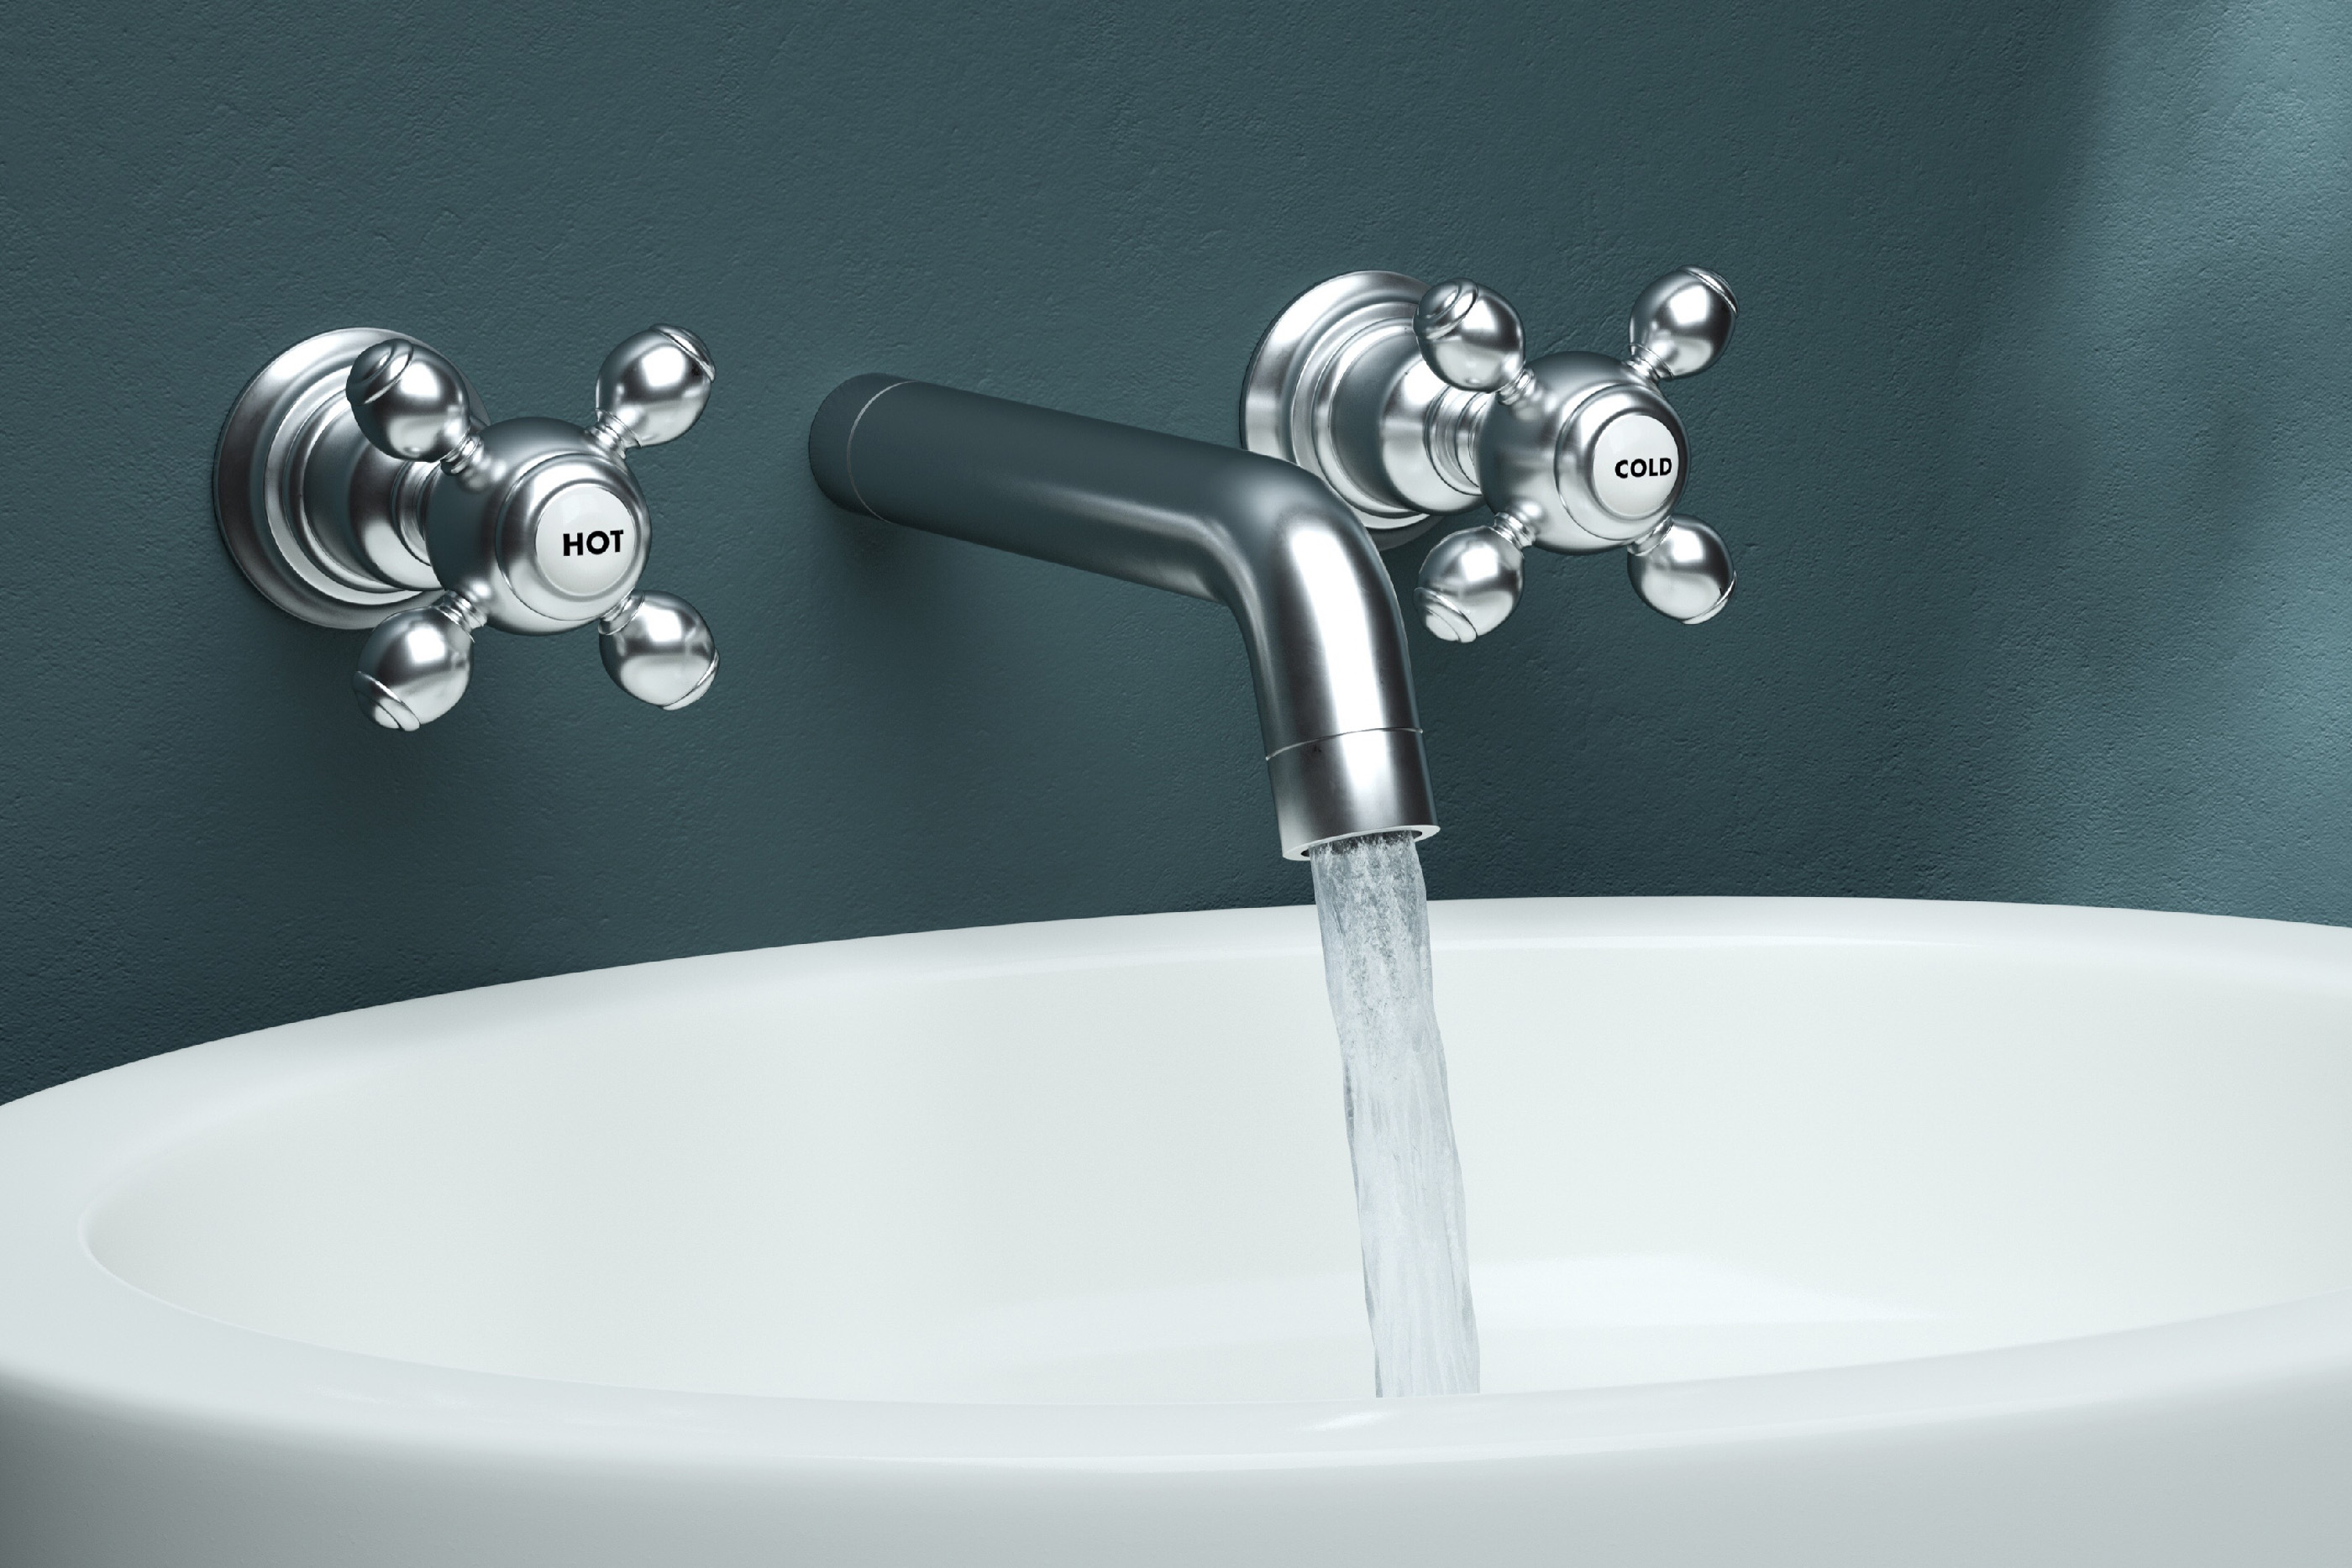 Close-Up Of Water Dripping From Faucet In Sink